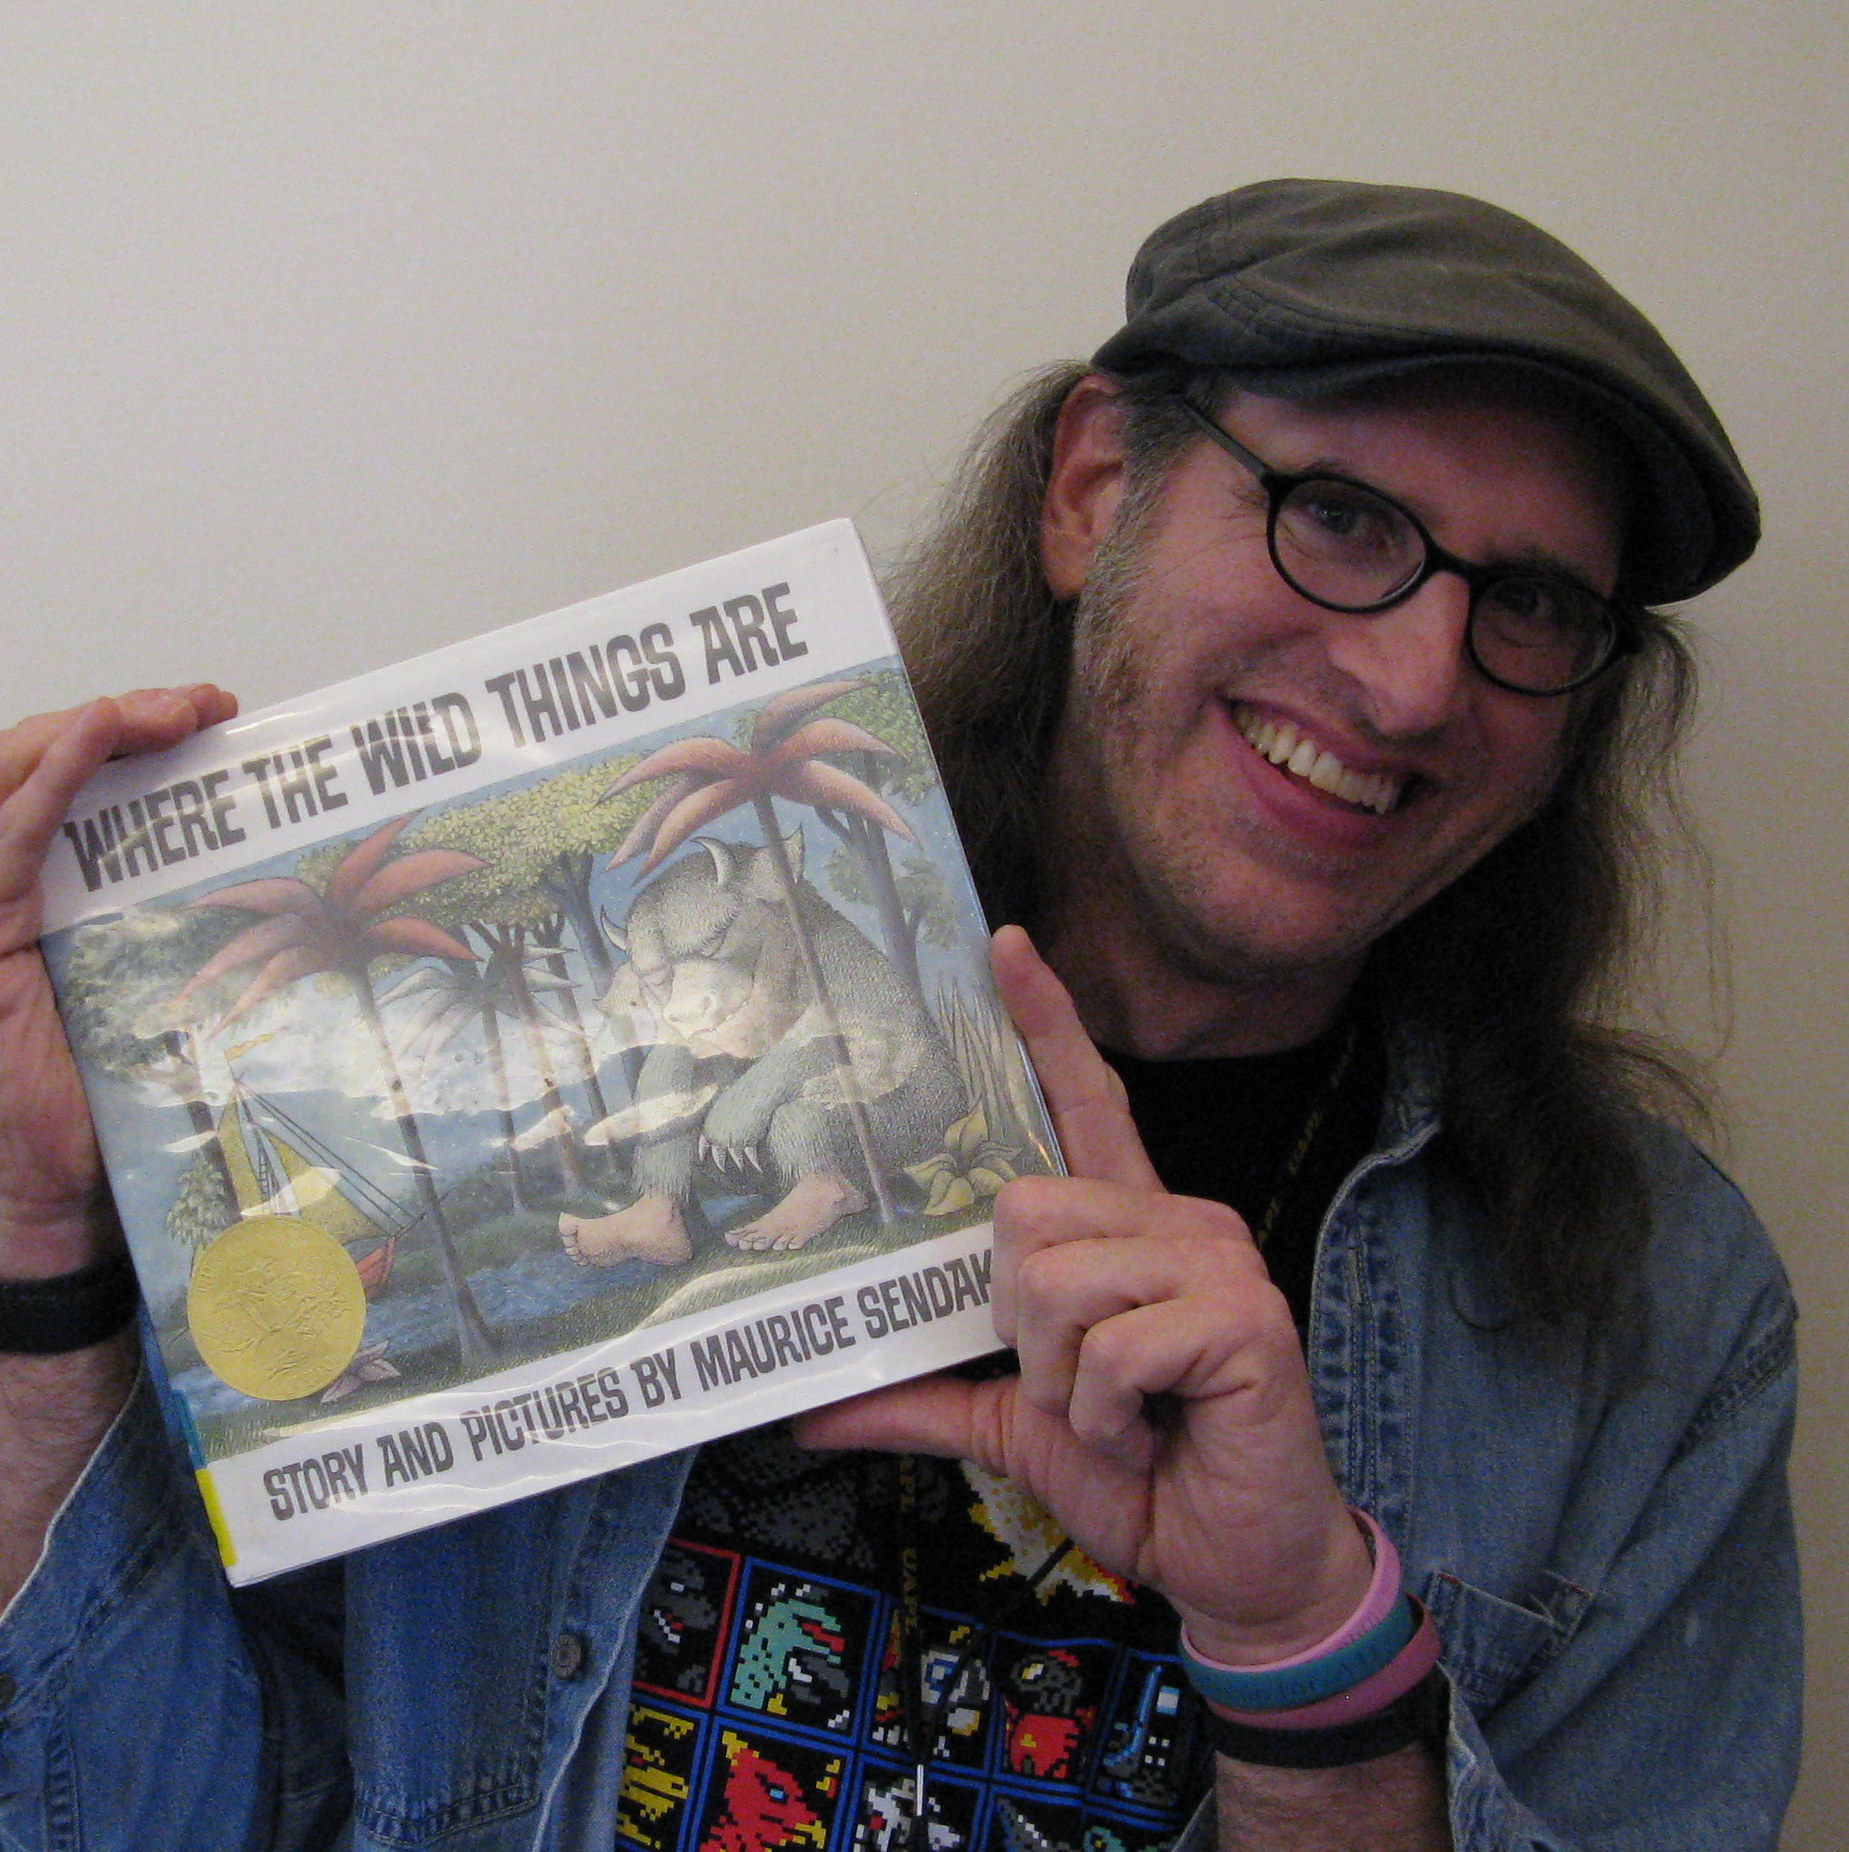 Photo of Brian holding the book Where the Wild Things Are